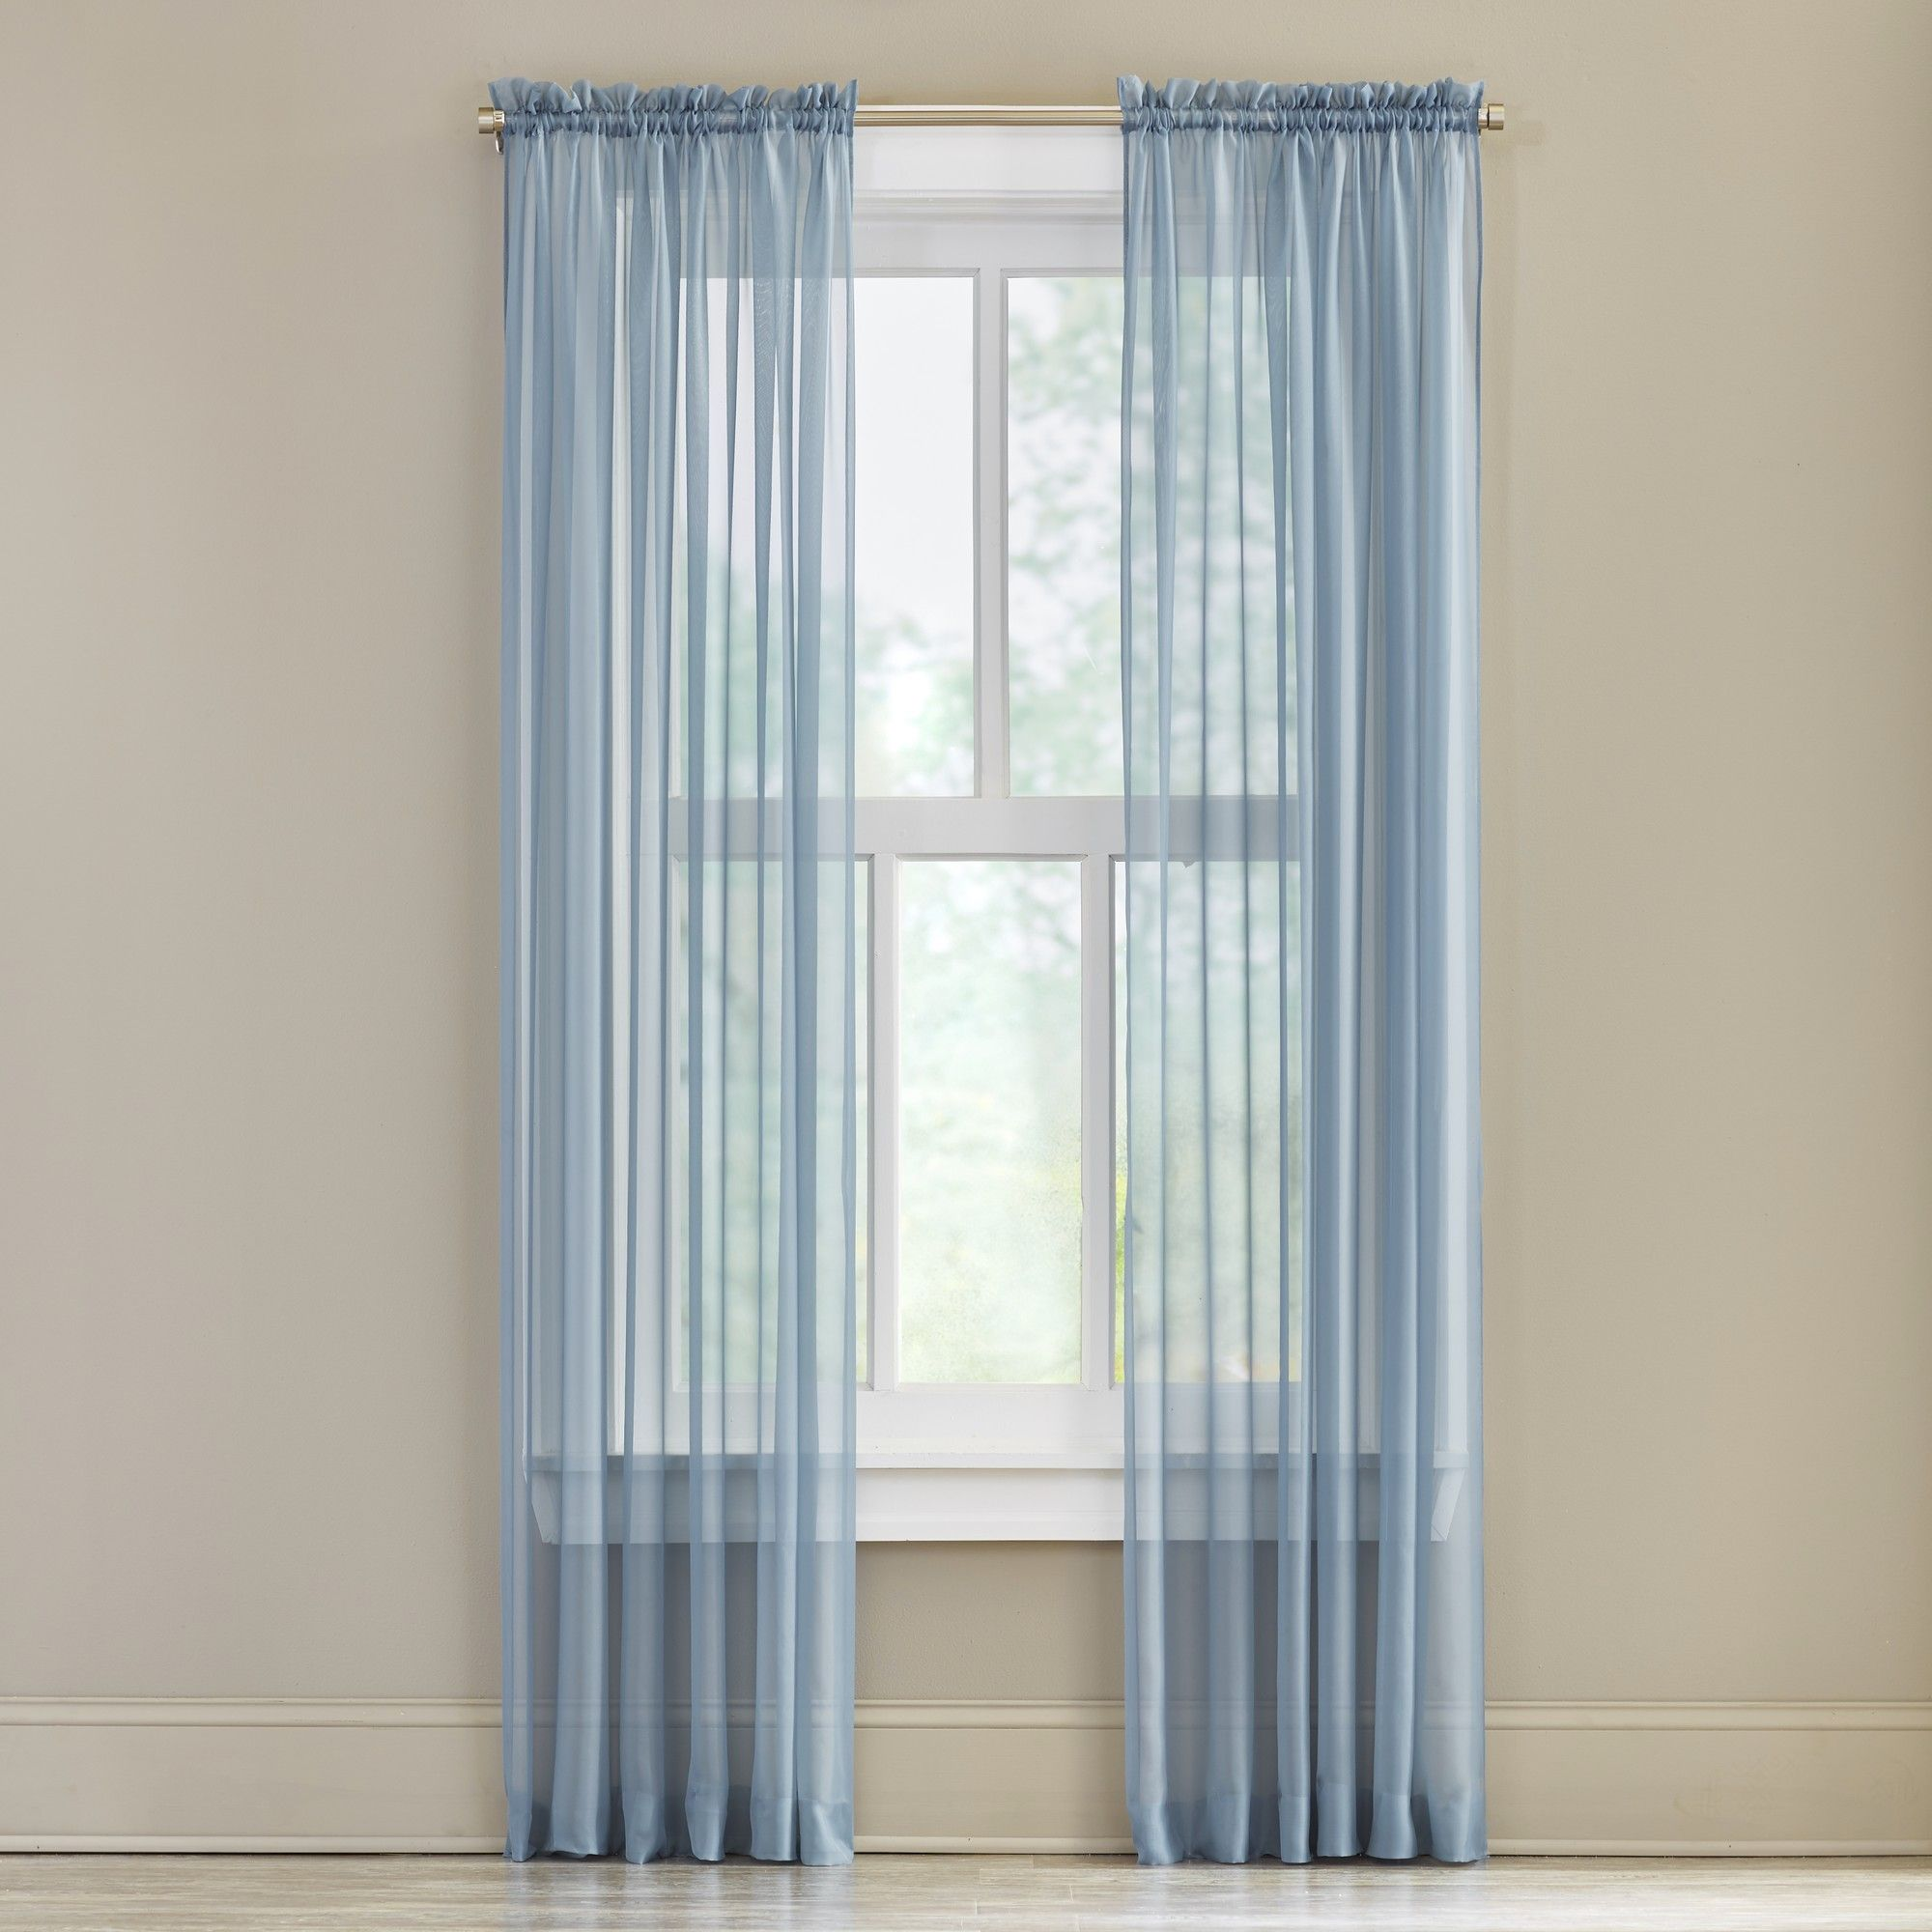 curtain set products tweed urbanest grommets with drapery colors of sheer panels